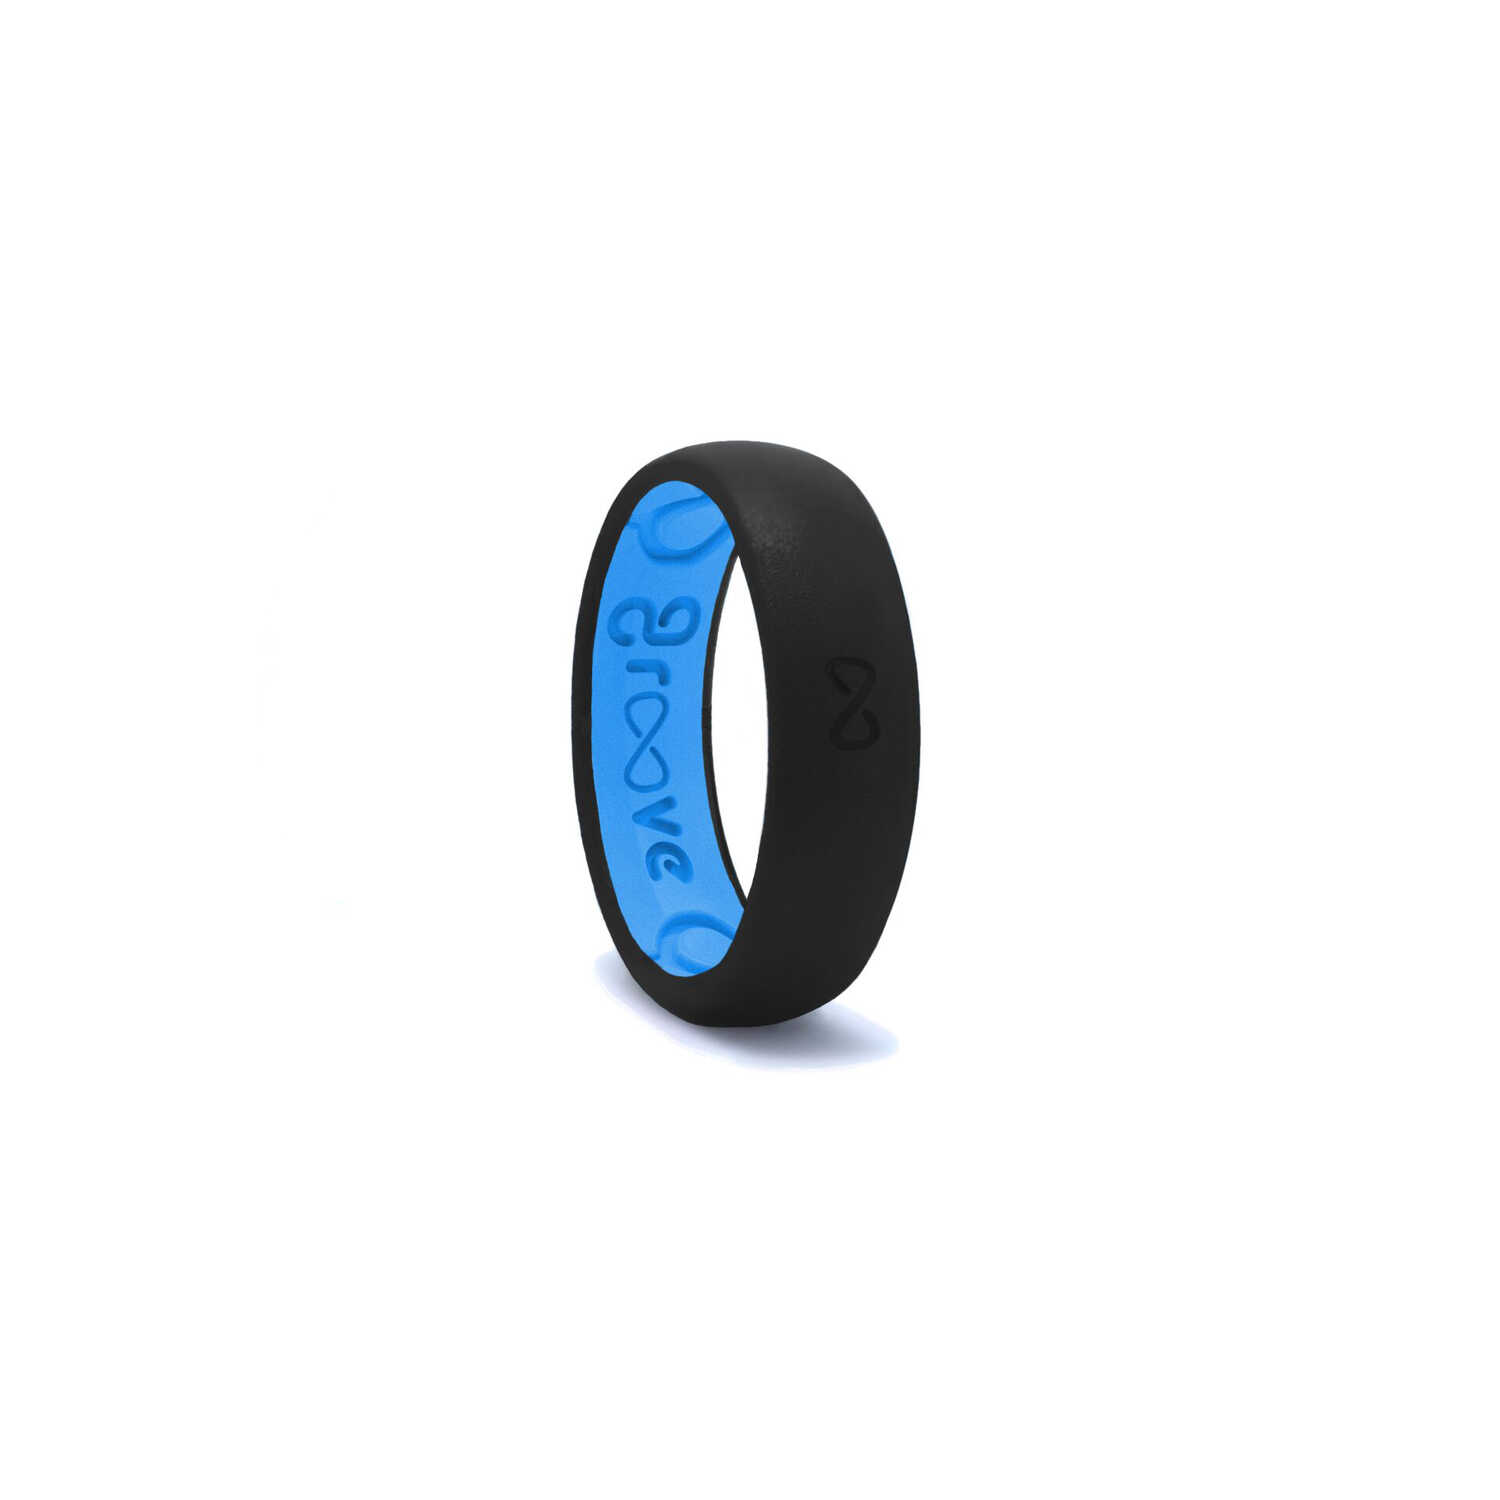 Groove Life  Unisex  Round  Midnight Black/Blue  Wedding Band  Water Resistant Silicone